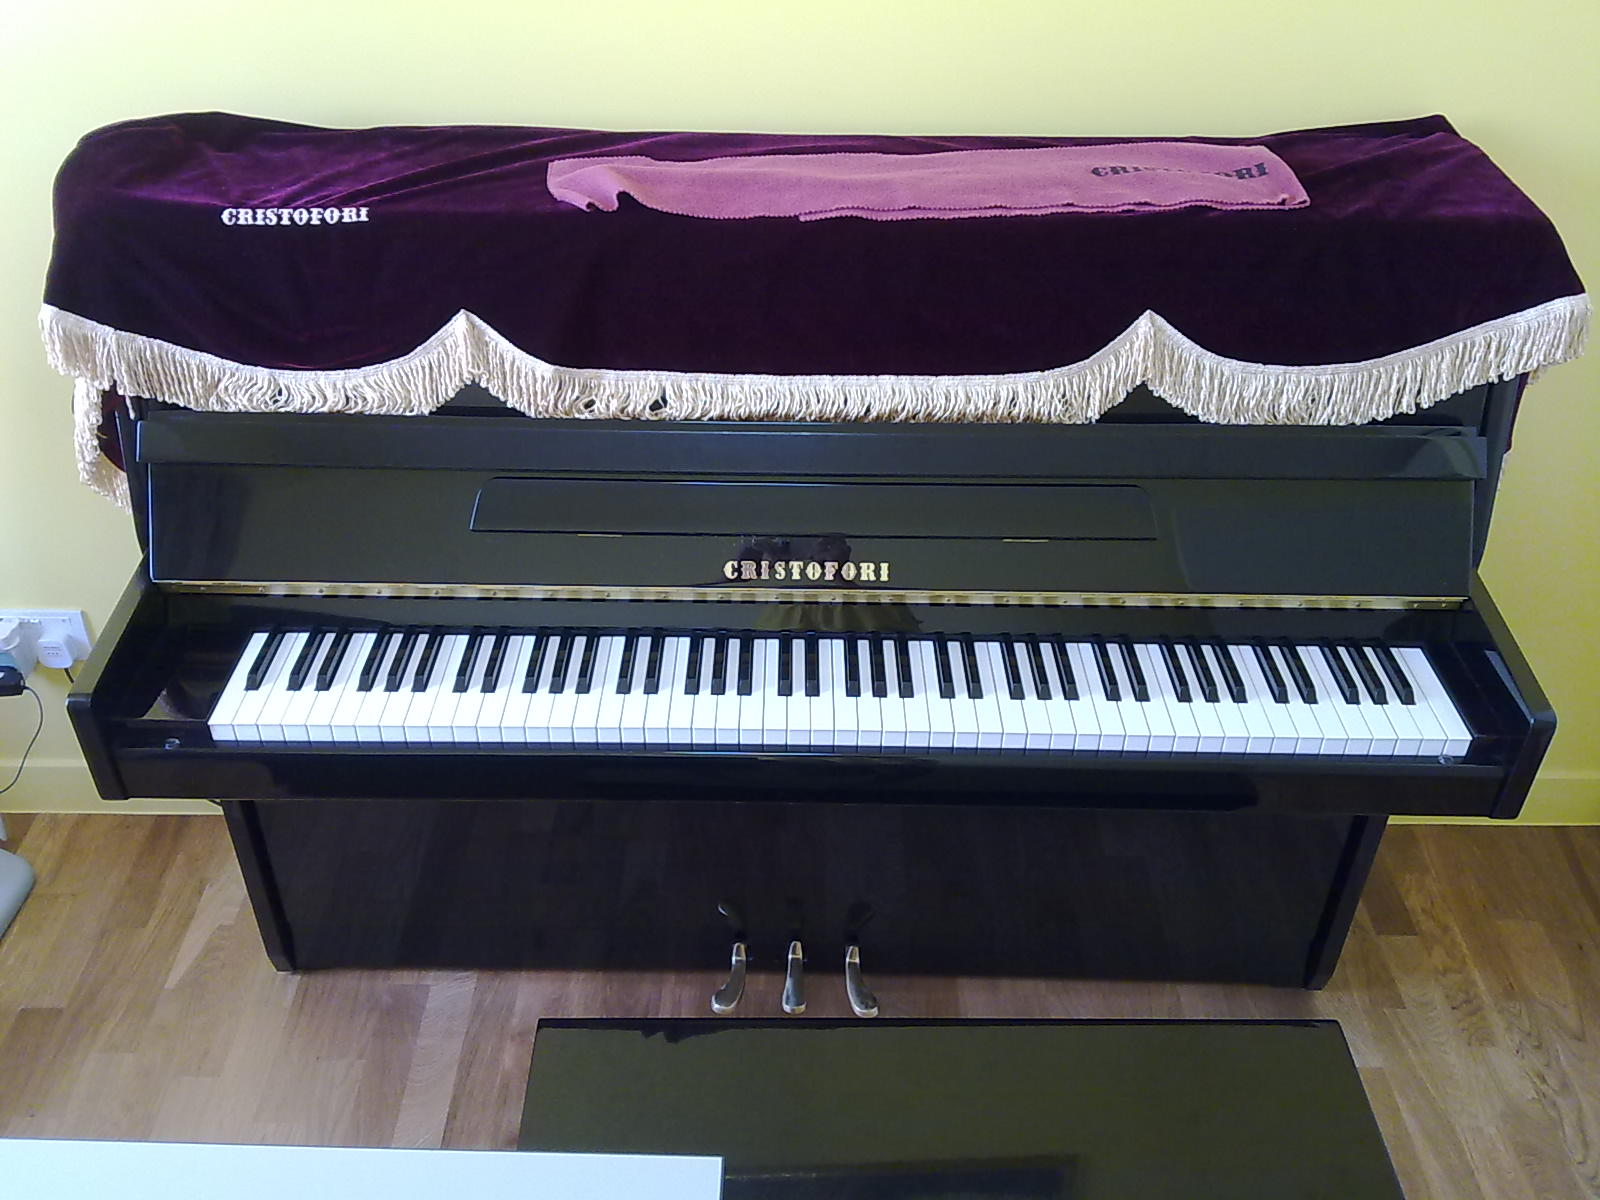 FOR SALE: -  -  - Cristofori Upright Piano B-108 EP